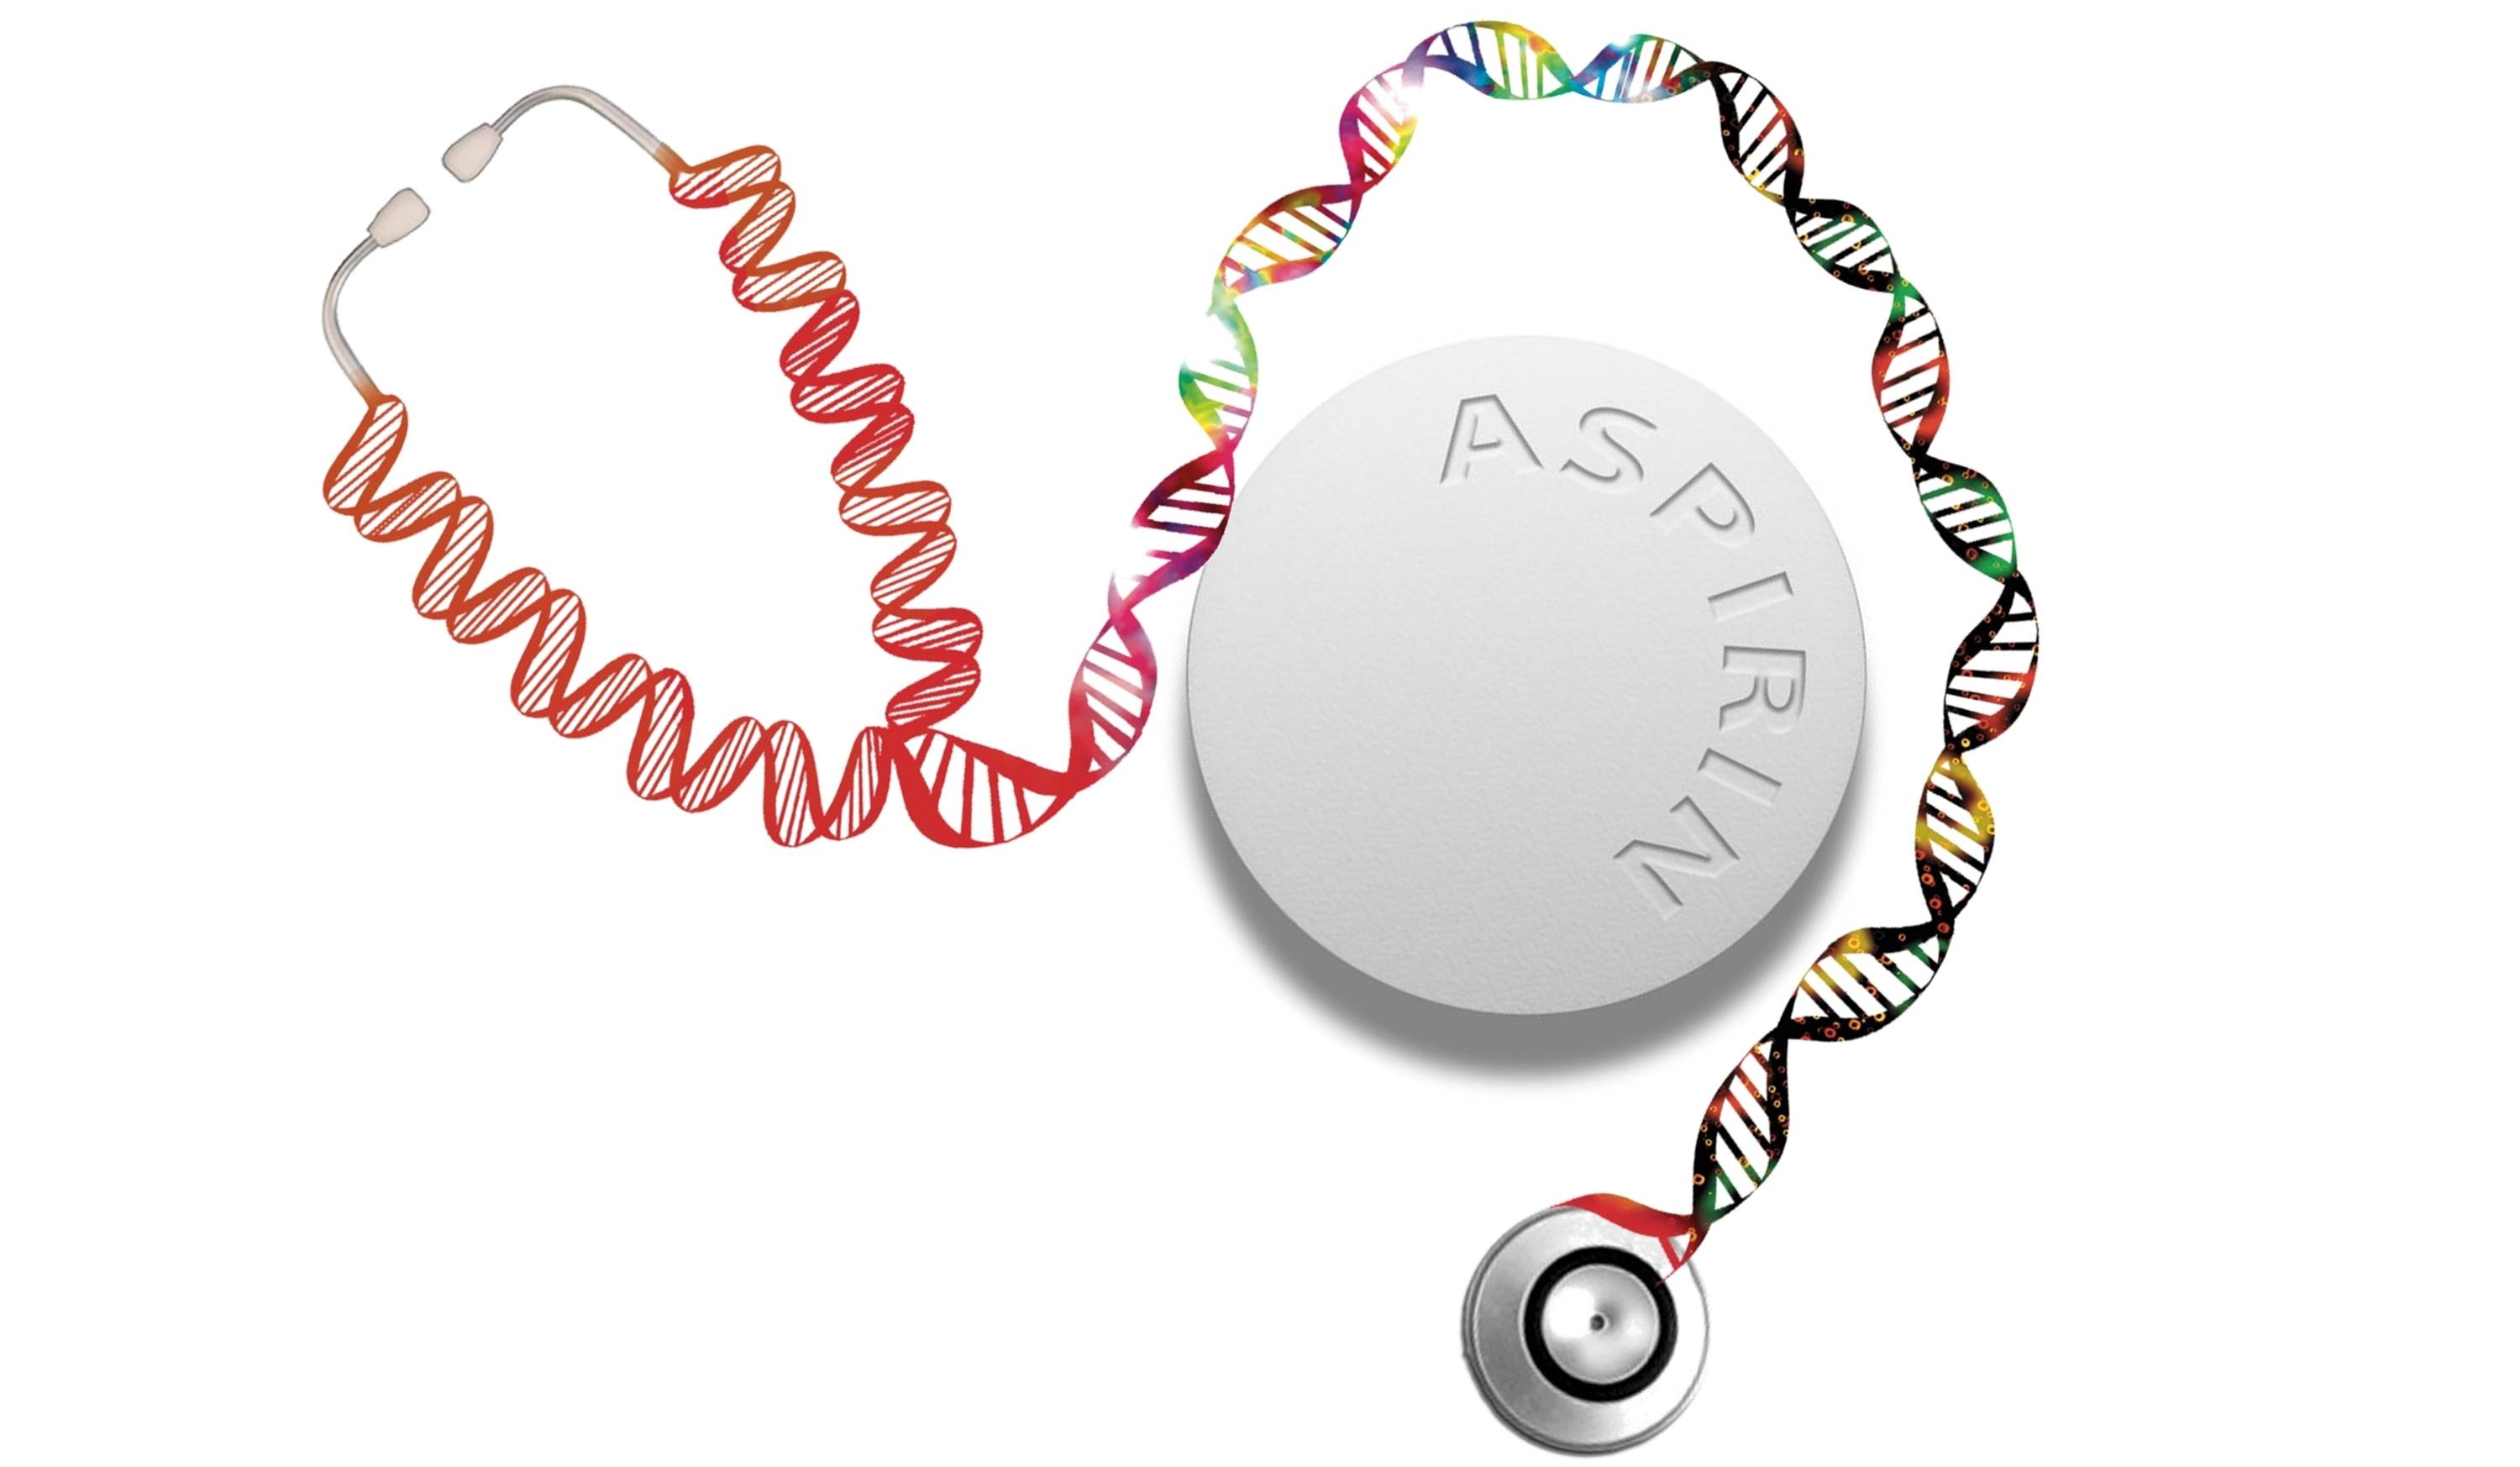 Aspirin and DNA Stethoscope